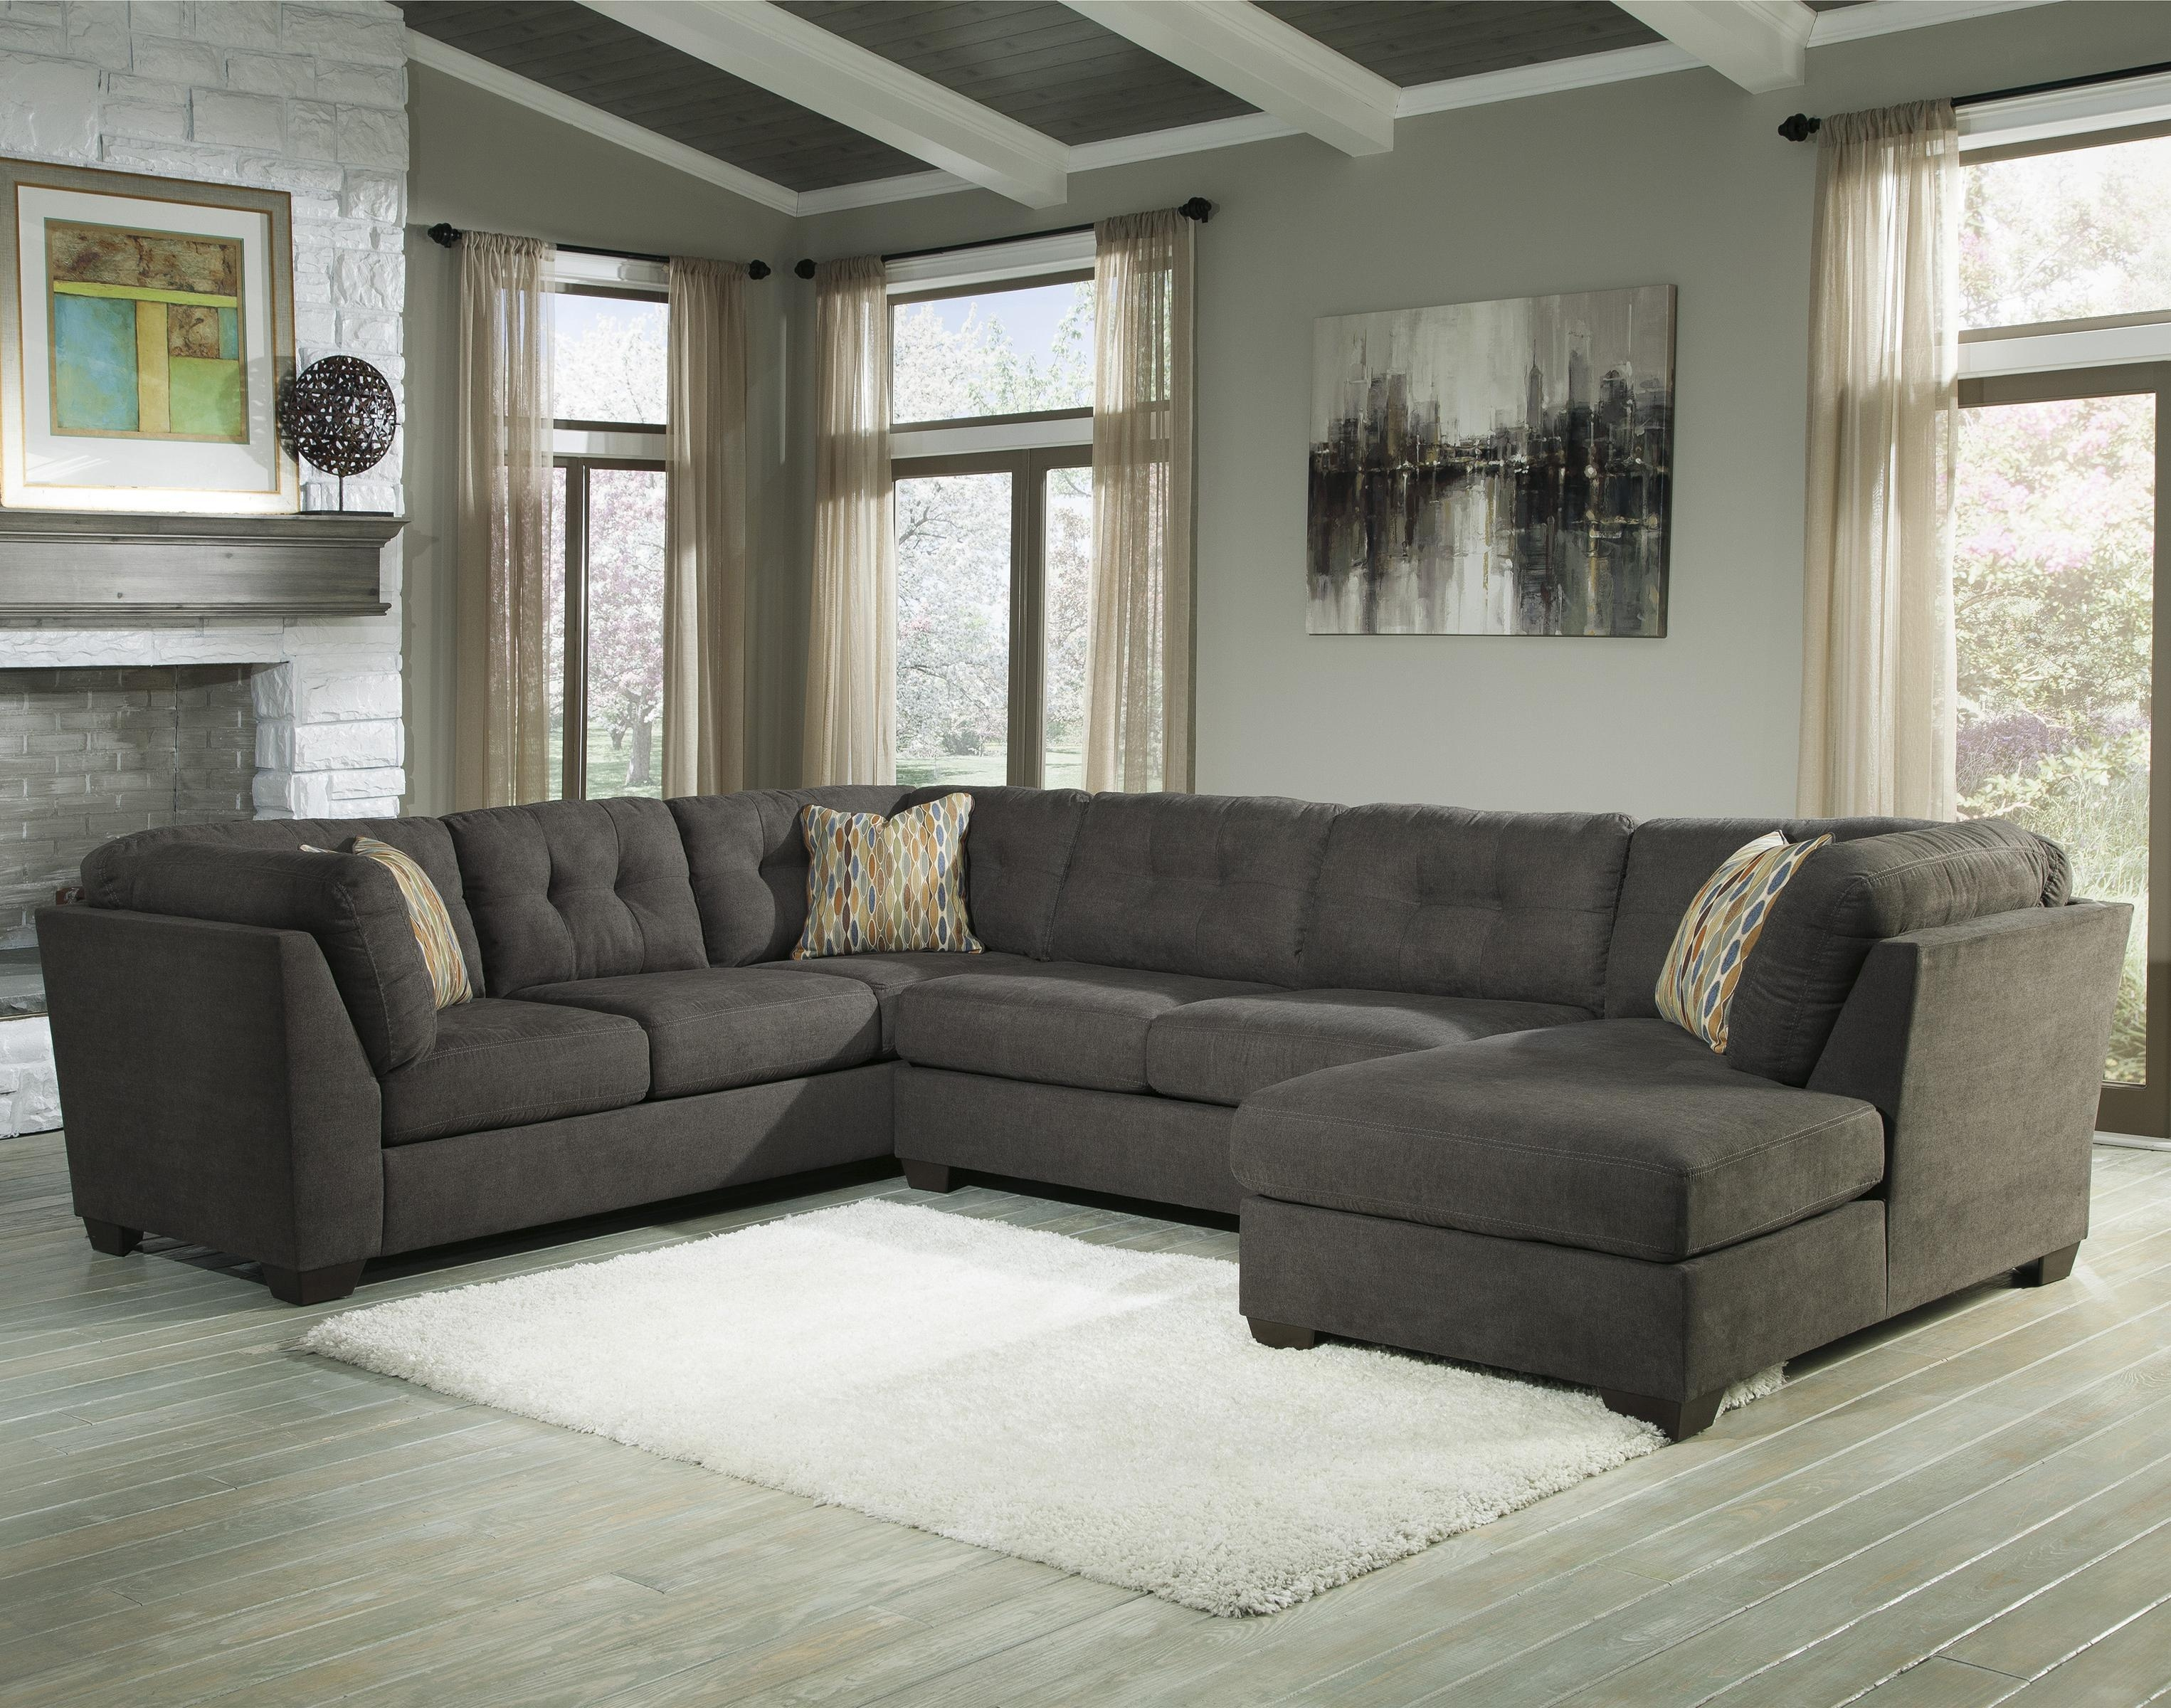 20 Best Collection Of Bauhaus Furniture Sectional Sofas